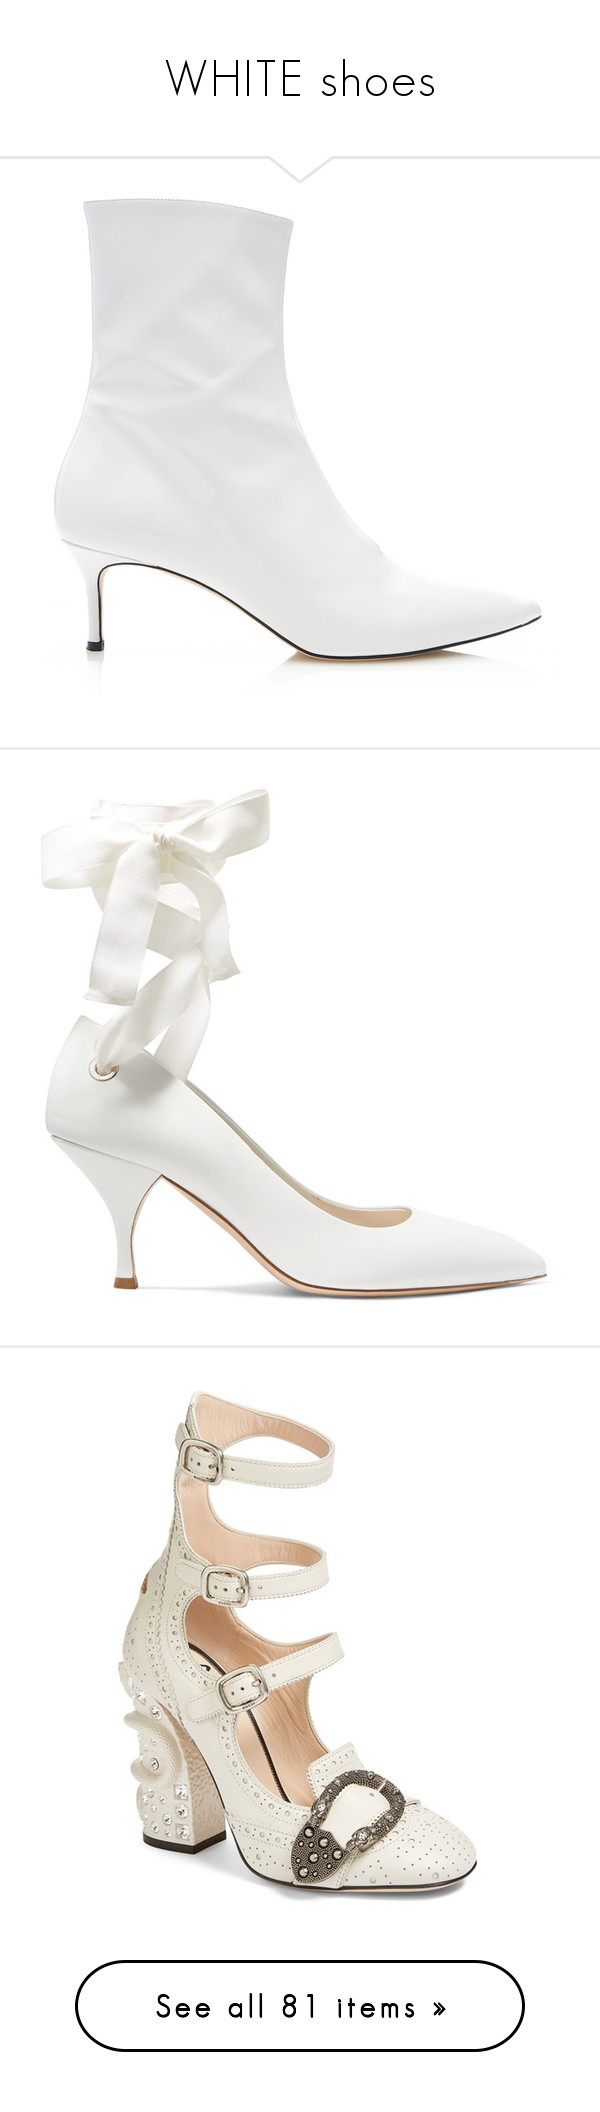 """""""WHITE shoes"""" by jckyleeah ❤ liked on Polyvore featuring white, whiteshoes, shoes, boots, ankle booties, pointed toe leather boots, short boots, pointed-toe boots, leather booties and pointy toe booties"""